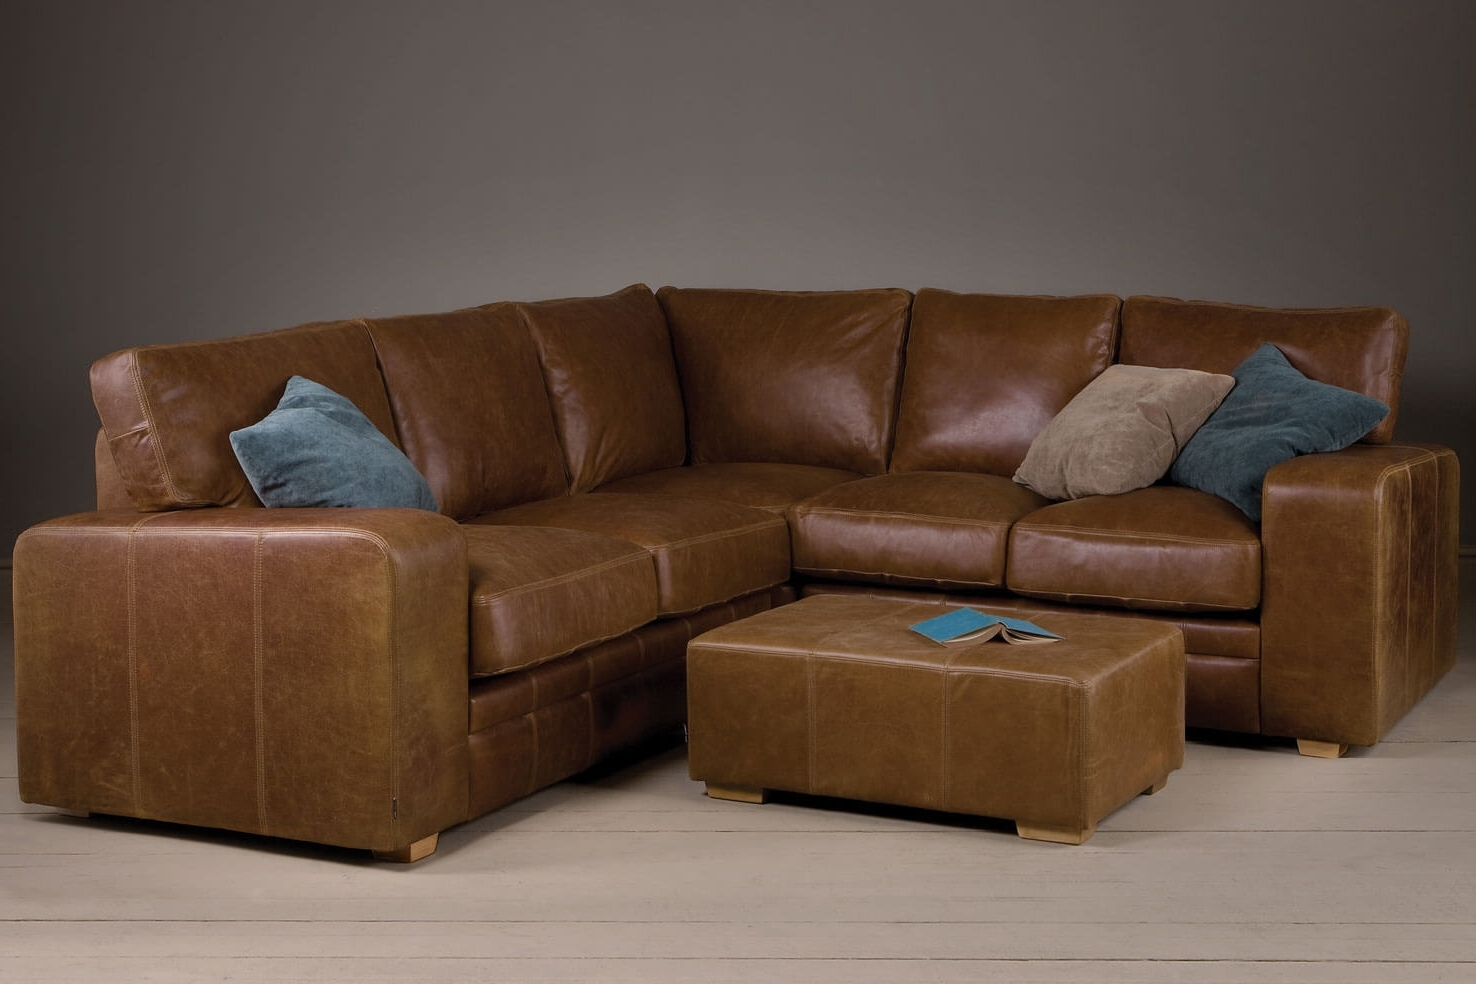 The Broad Arm Leather Corner Sofaindigo Furniture Intended For Most Recent Corner Sofa Chairs (View 3 of 15)